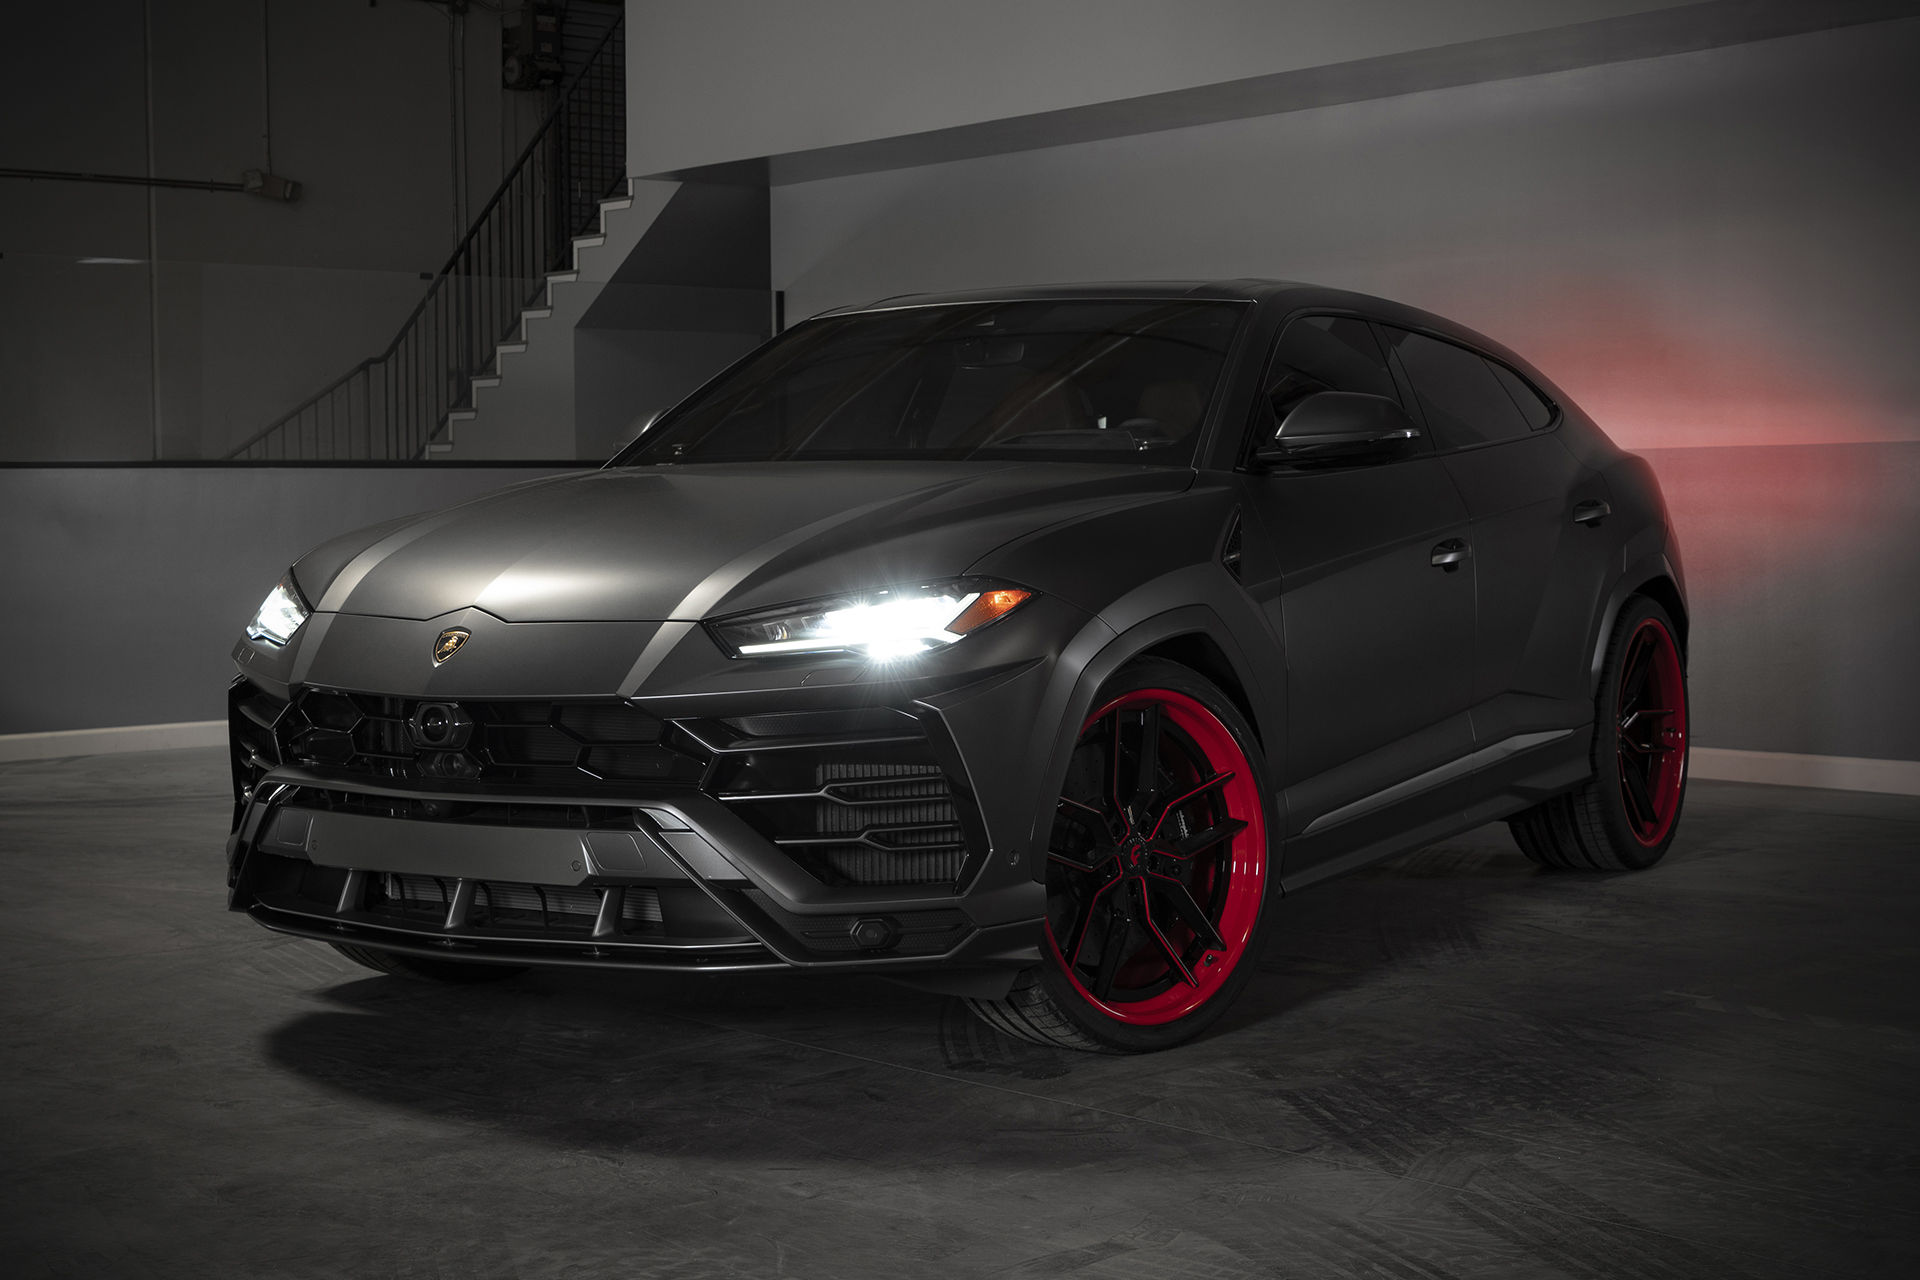 2019 Lamborghini Urus on 24,Inch Forgiato Wheels